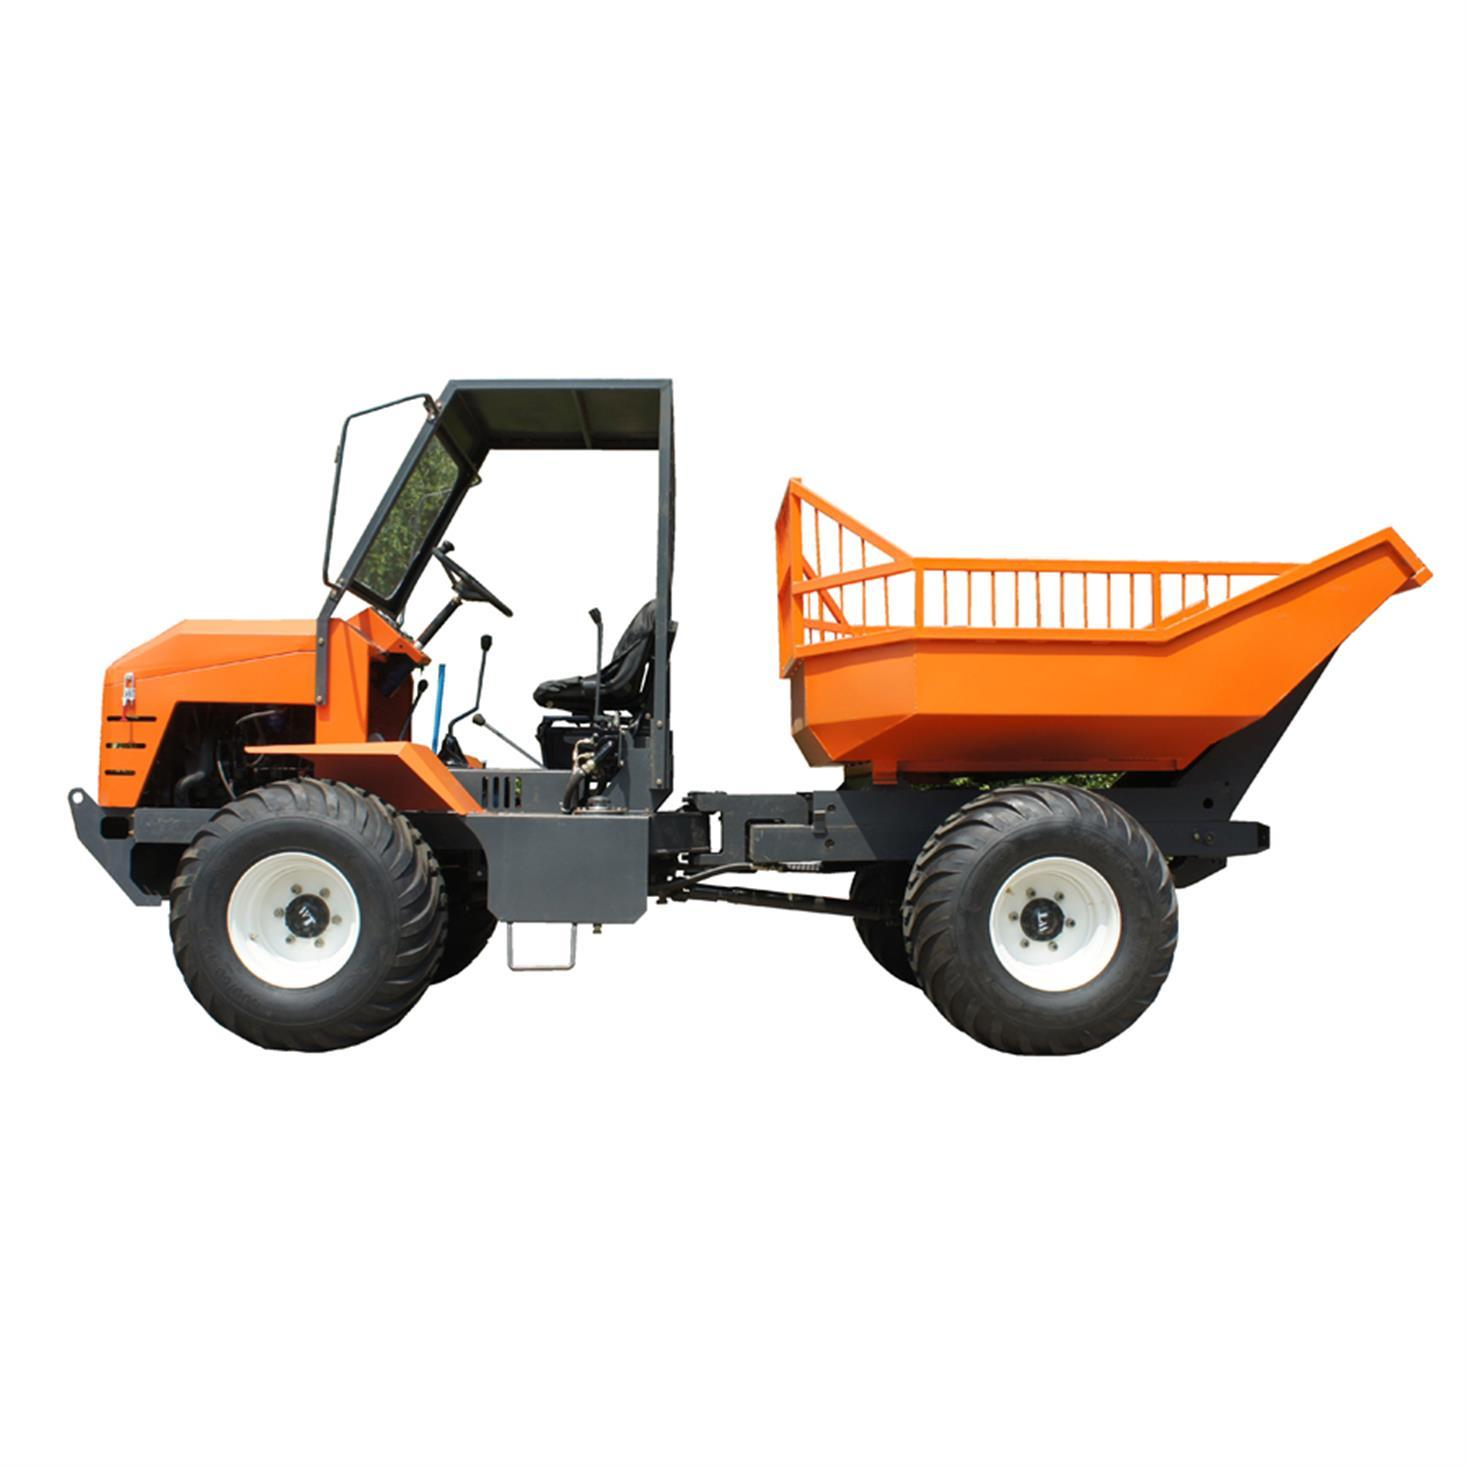 High Lifting container 4WD Palm Oil Tractor 2